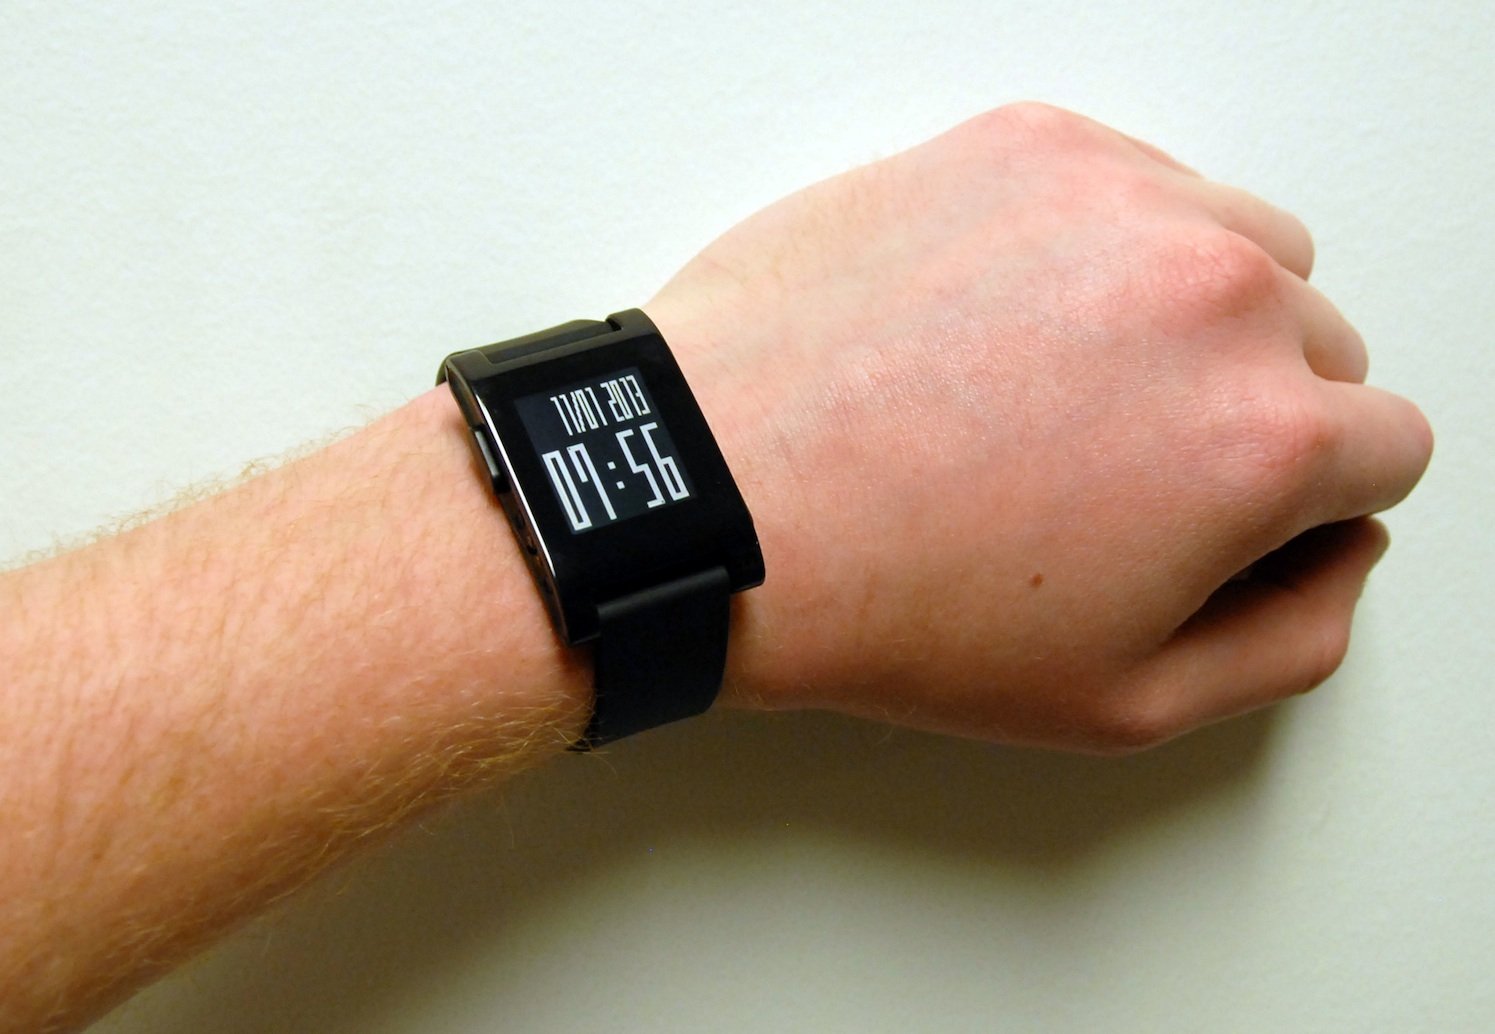 New Research: Cheating on Exams with Smartwatches